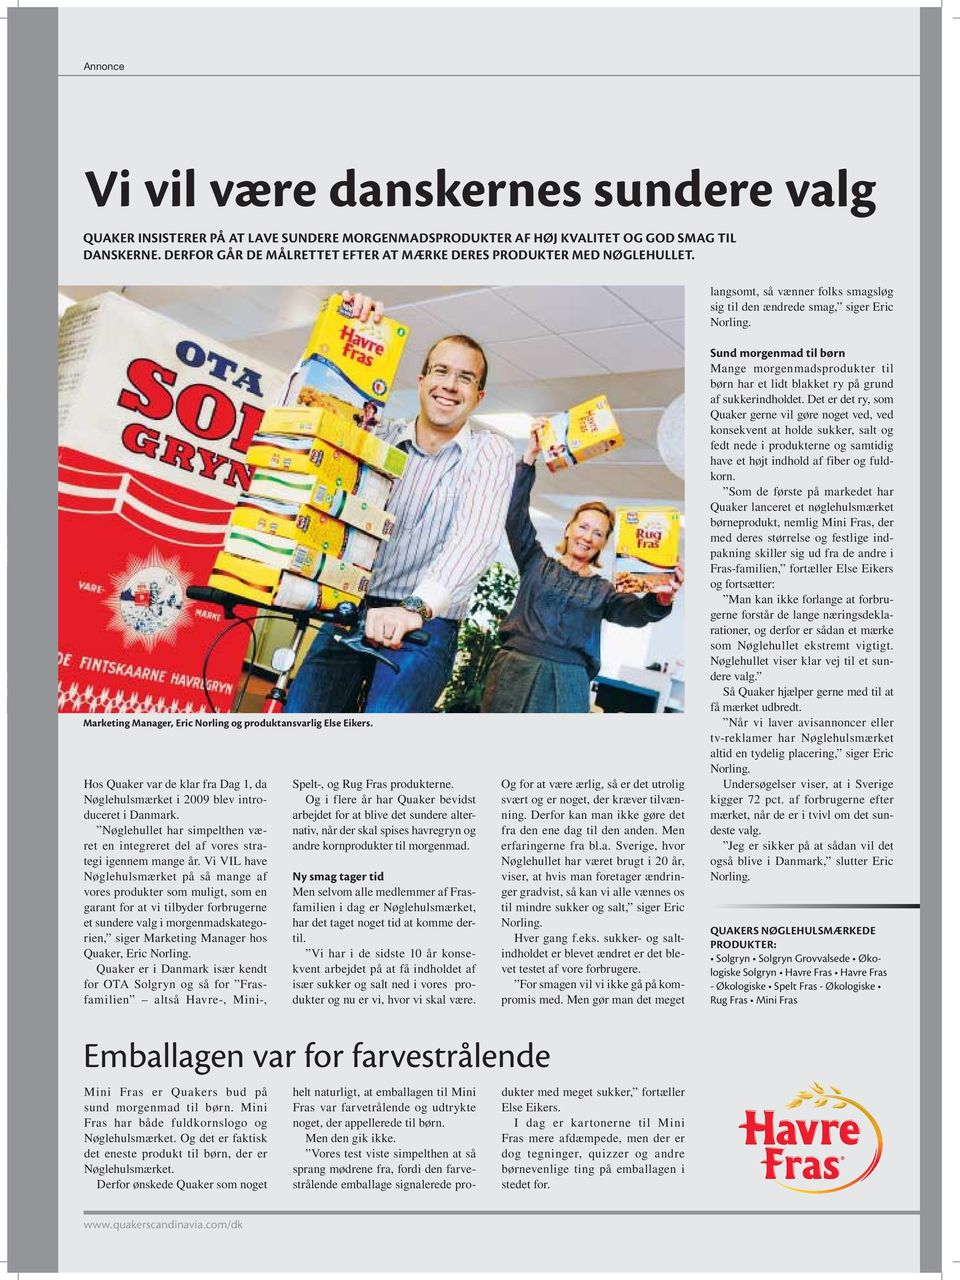 Marketing Manager, Eric Norling og produktansvarlig Else Eikers. Hos Quaker var de klar fra Dag 1, da Nøglehulsmærket i 2009 blev introduceret i Danmark.